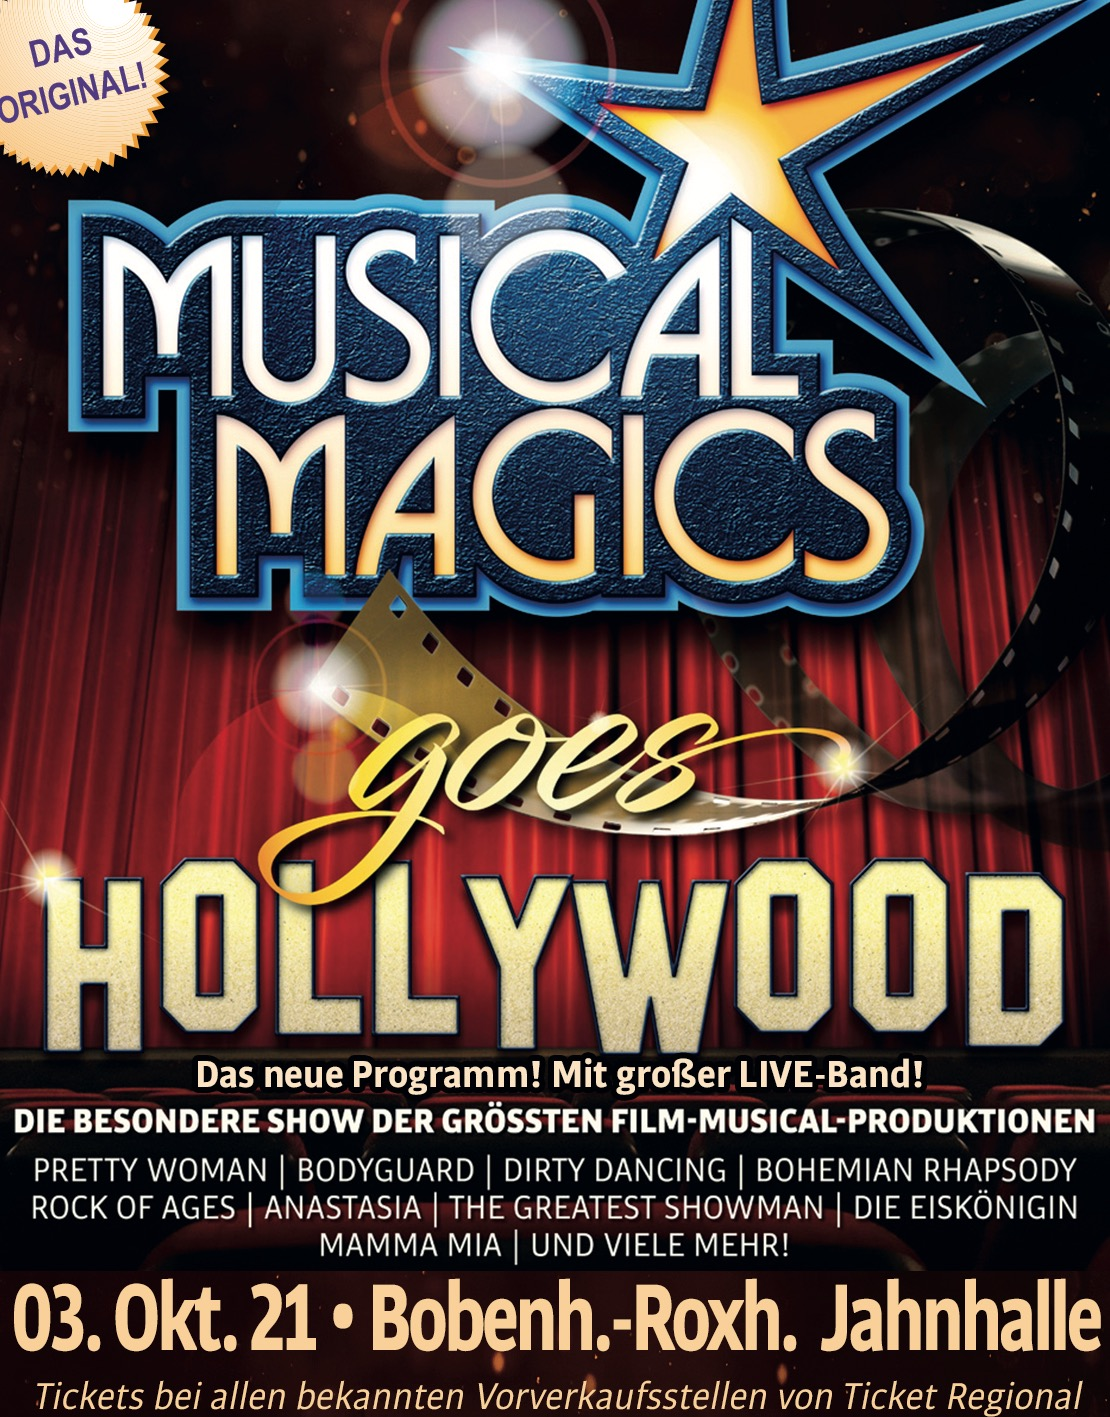 Whynot Events Musicals KN23880